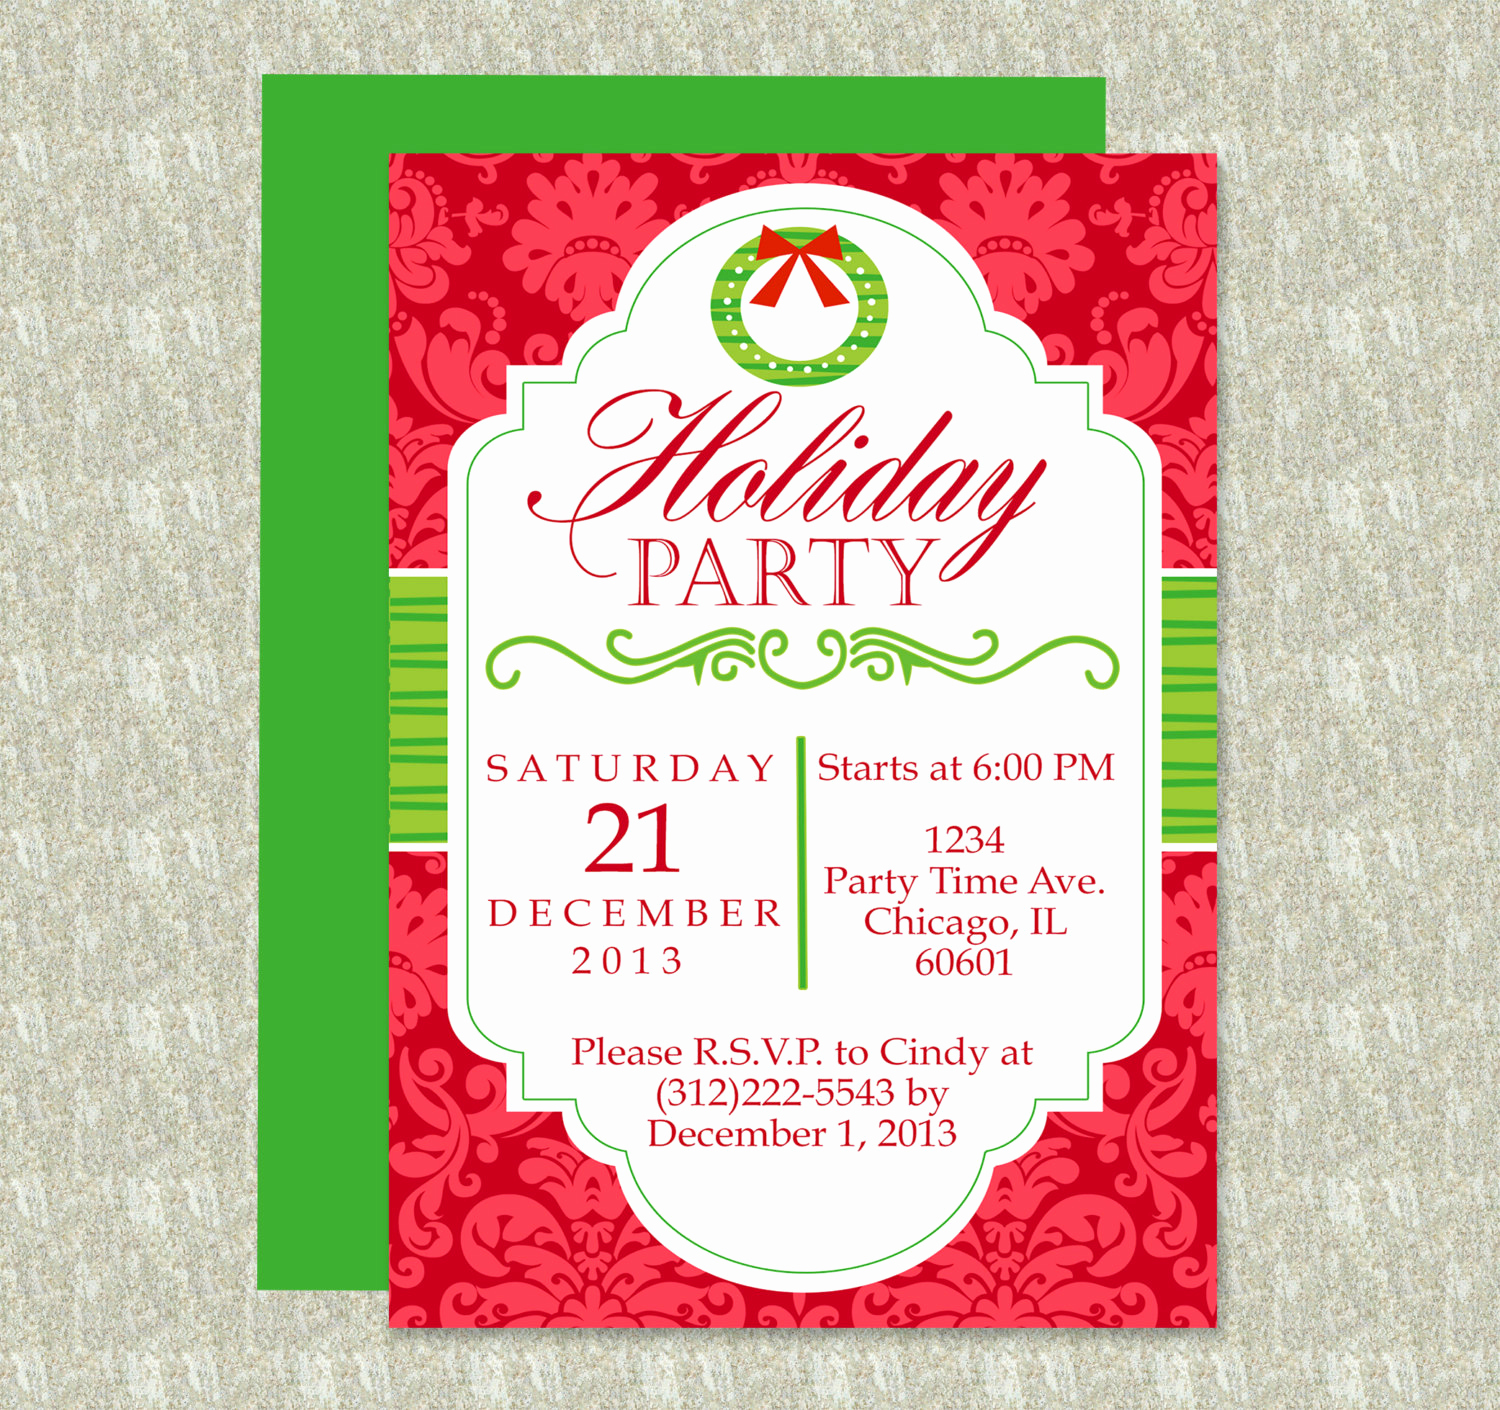 Holiday Party Invitation Template Beautiful Holiday Party Invitation Editable Template Microsoft Word